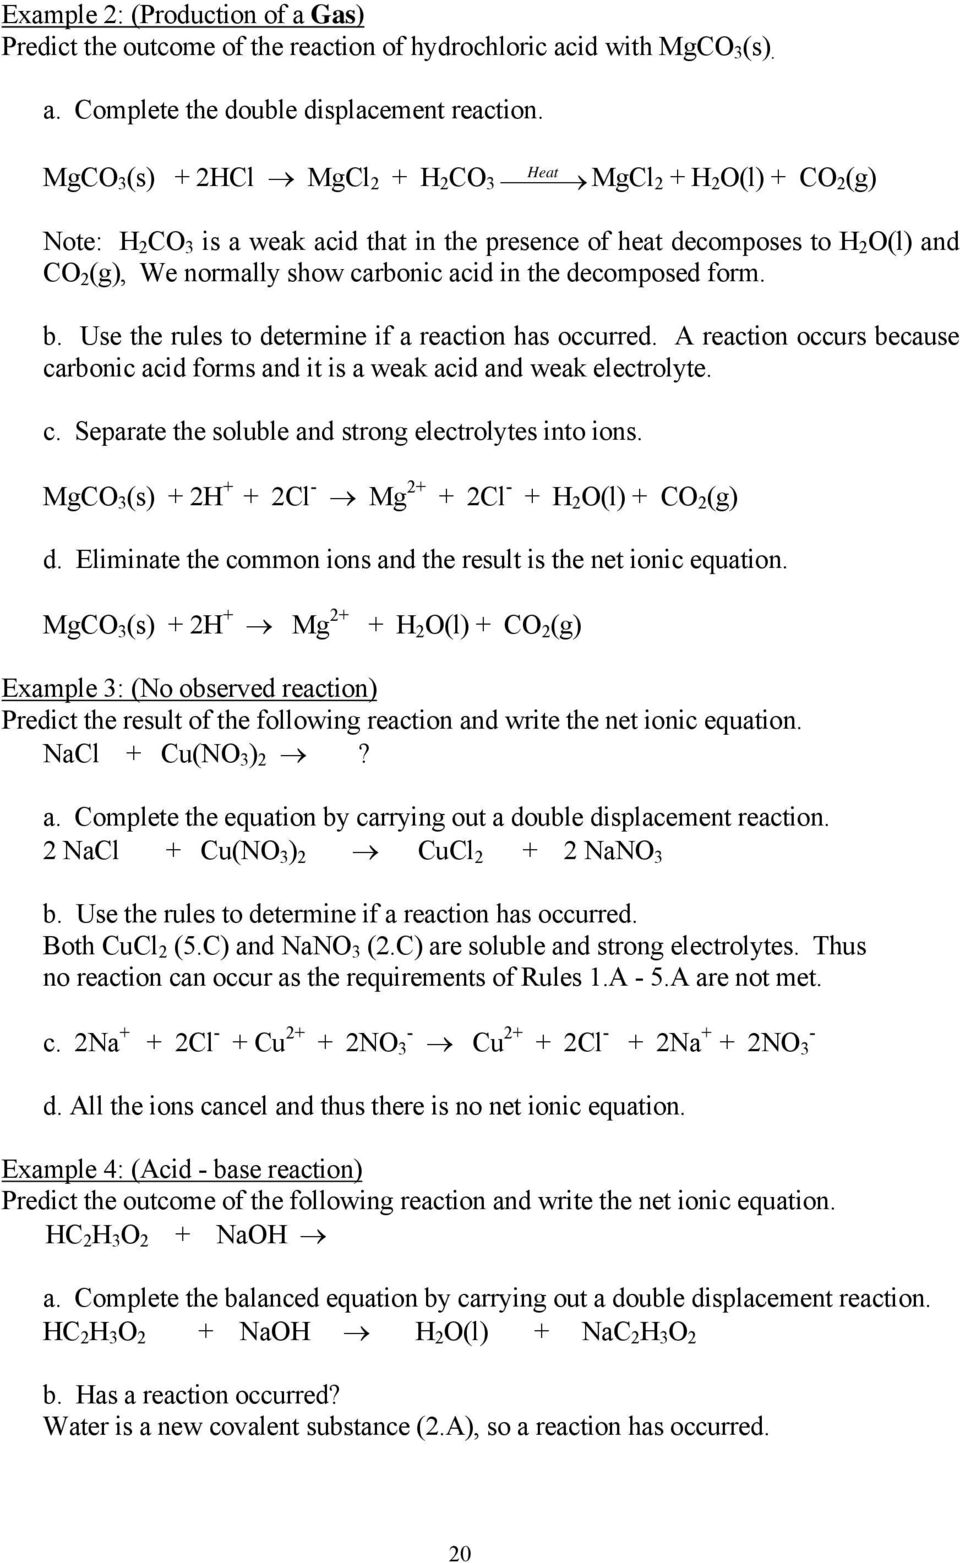 Experiment 1 Chemical Reactions and Net Ionic Equations - PDF